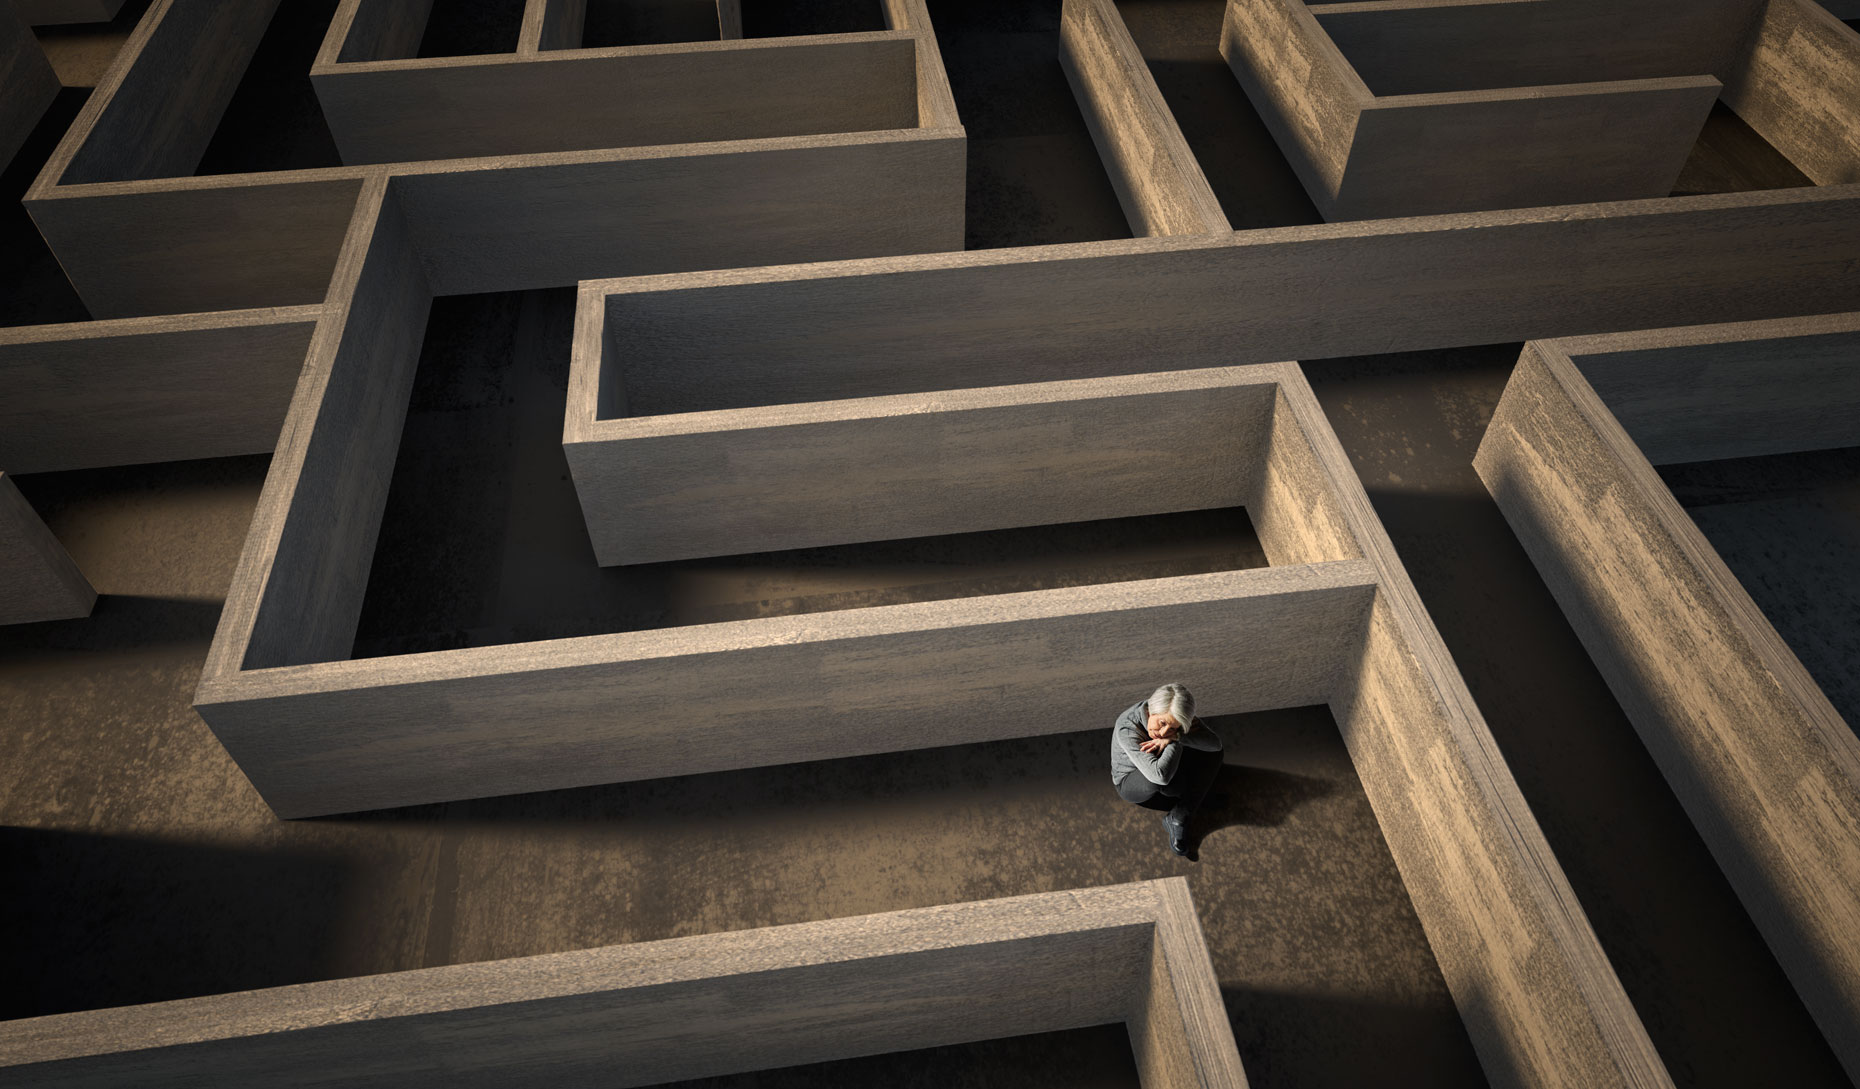 Depressed older woman seated in a maze